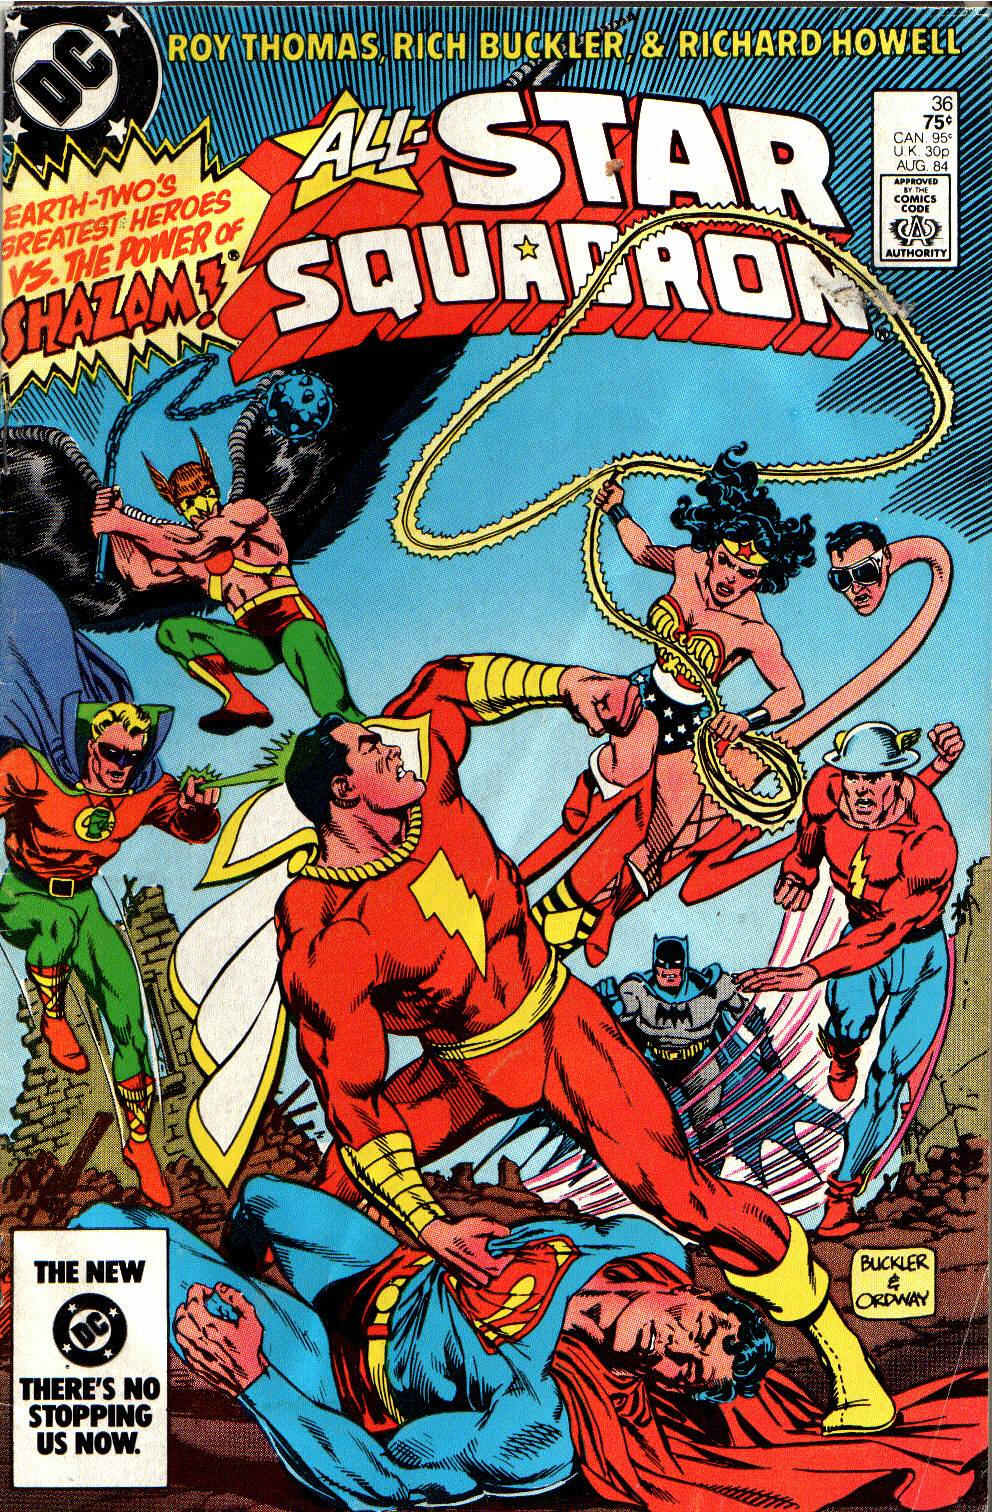 Read online All-Star Squadron comic -  Issue #36 - 1